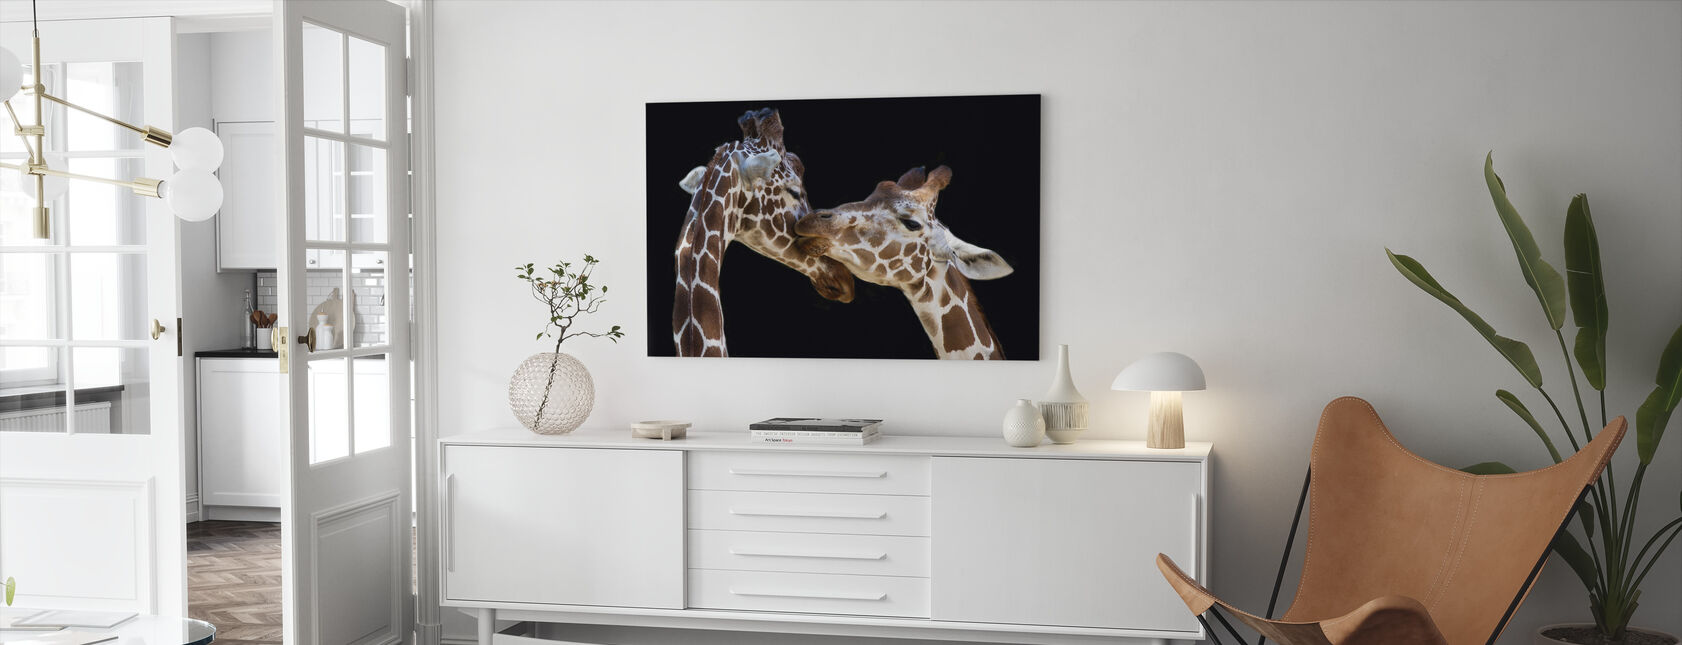 Giraffes Kissing - Canvas print - Living Room